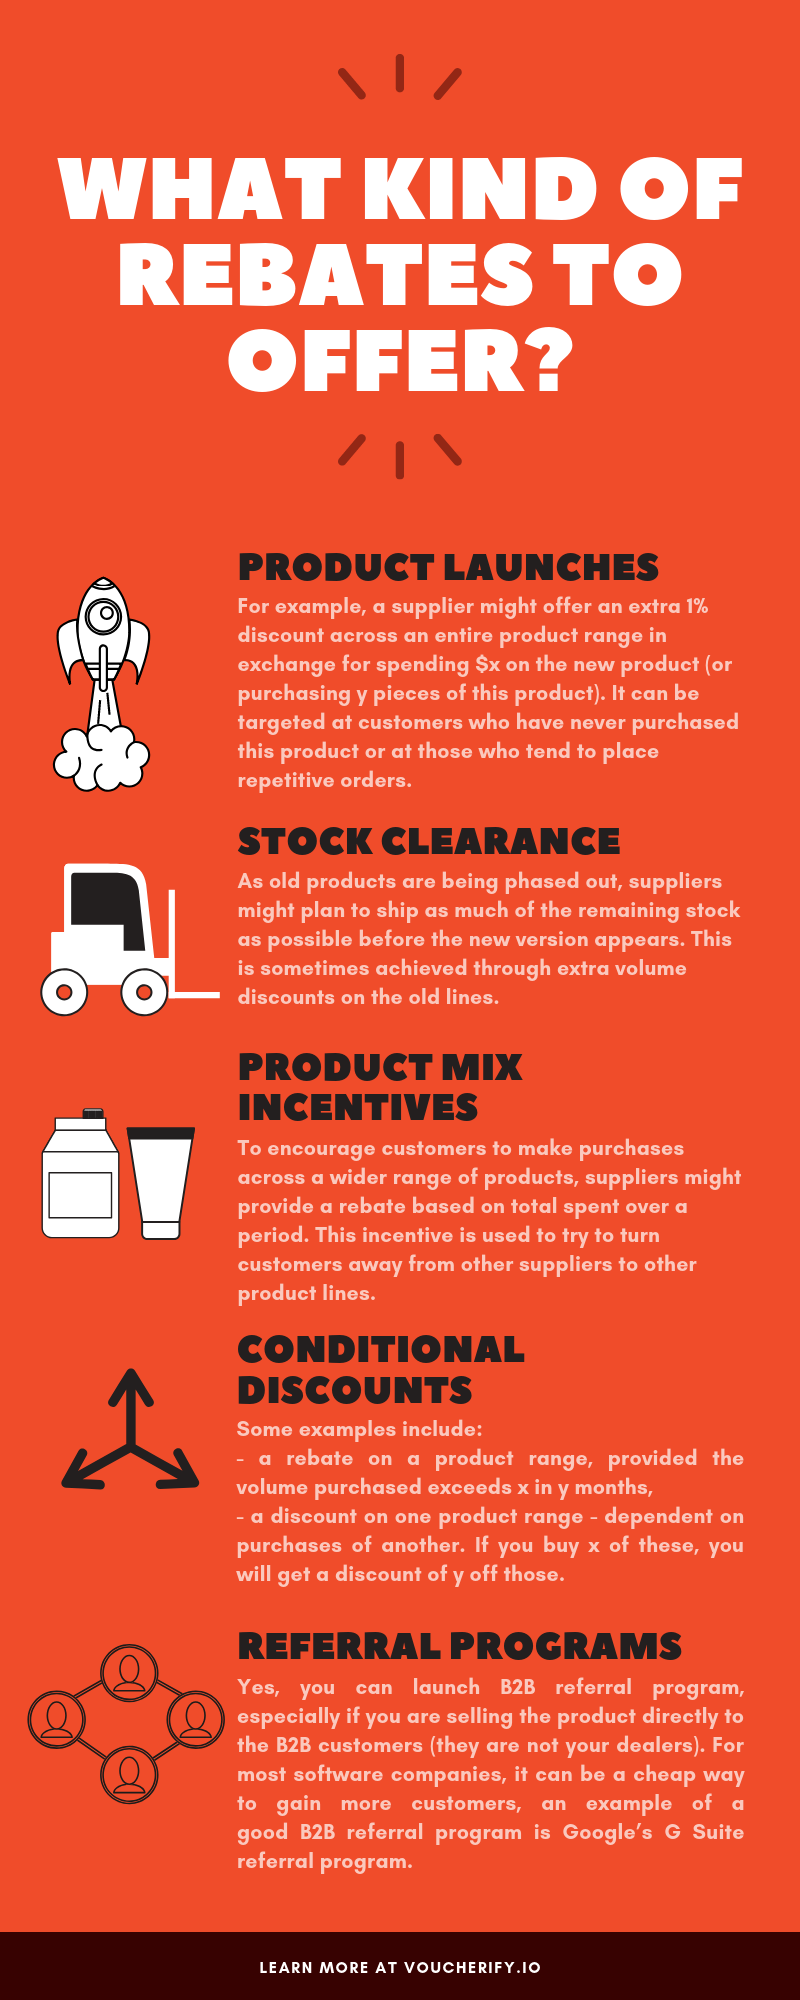 Types of rebates to offer [Infographic Transcript]: 1. Product Launches, 2. Stock Clearance, 3. Product Mixed Incentives, 4. Conditional Discounts, 5. Referral Programs